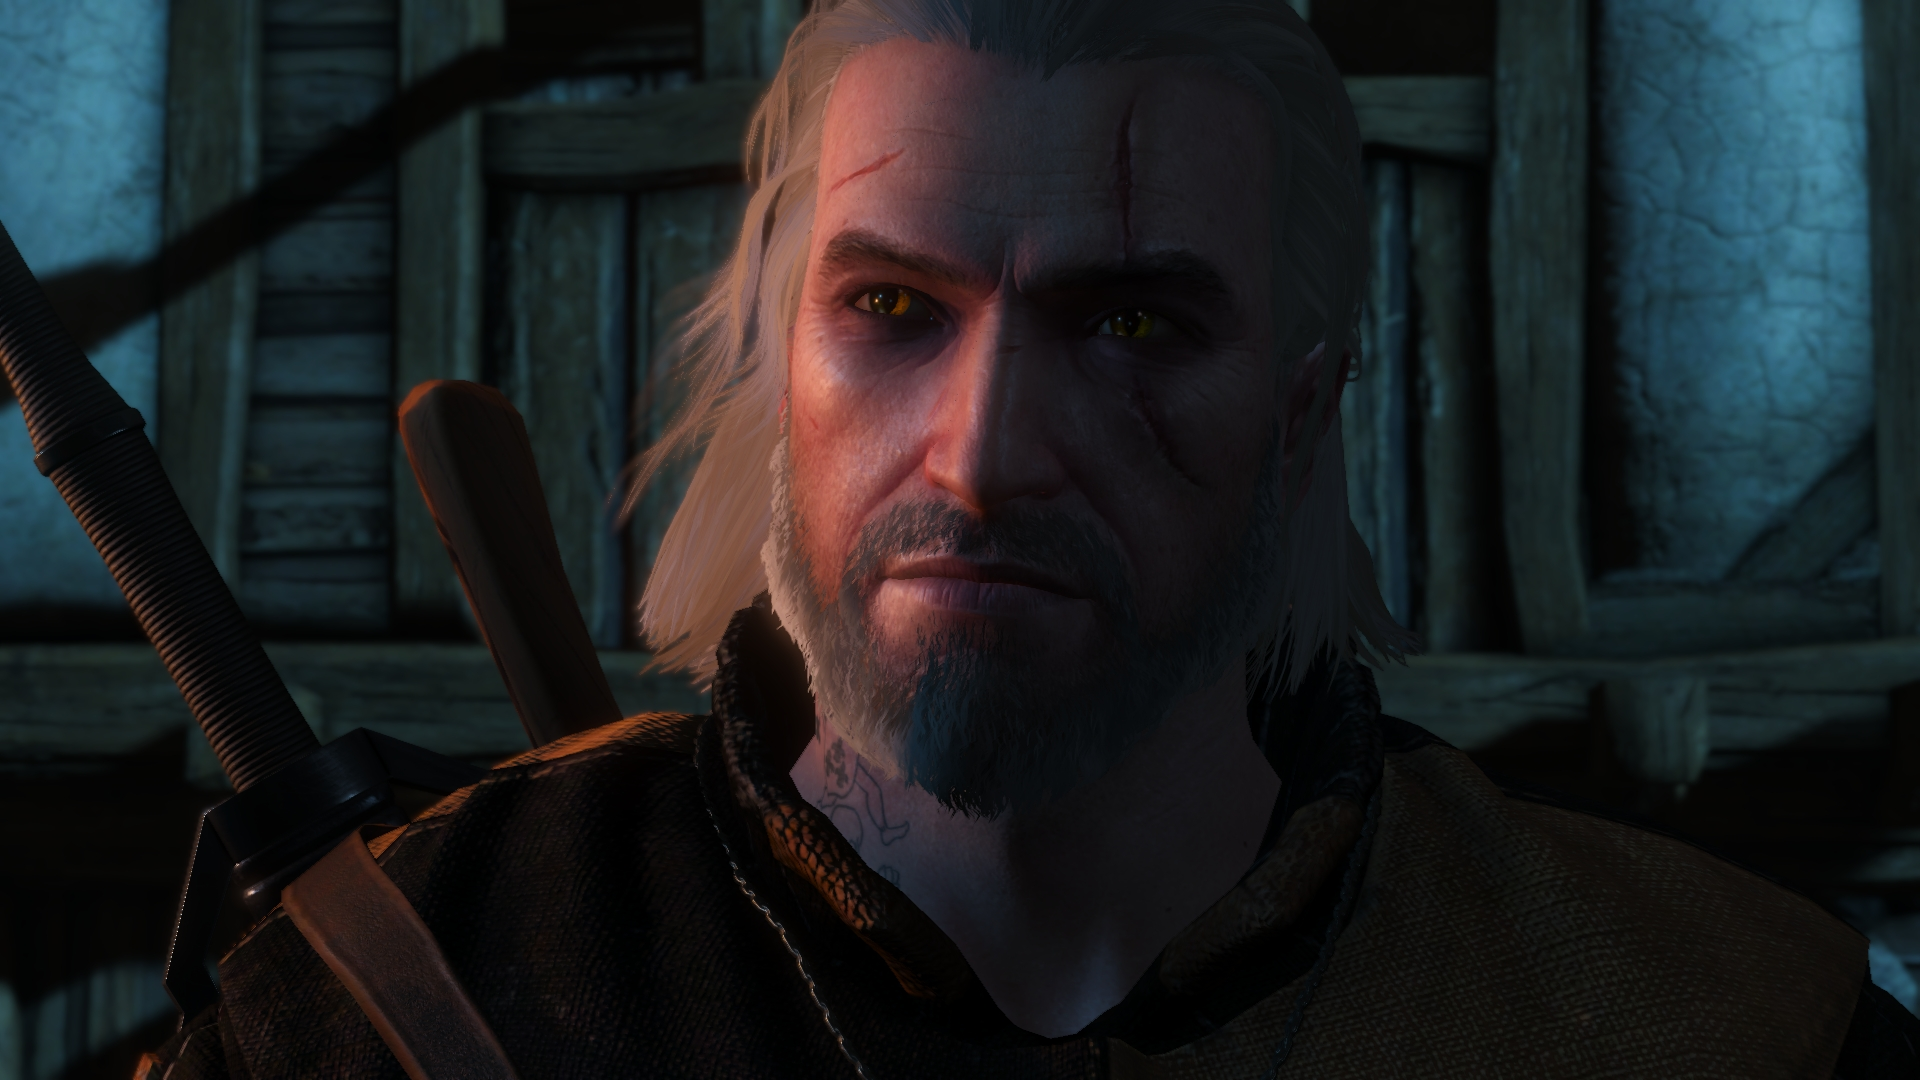 witcher3 2016-10-04 22-35-00-09.jpg - Witcher 3: Wild Hunt, the